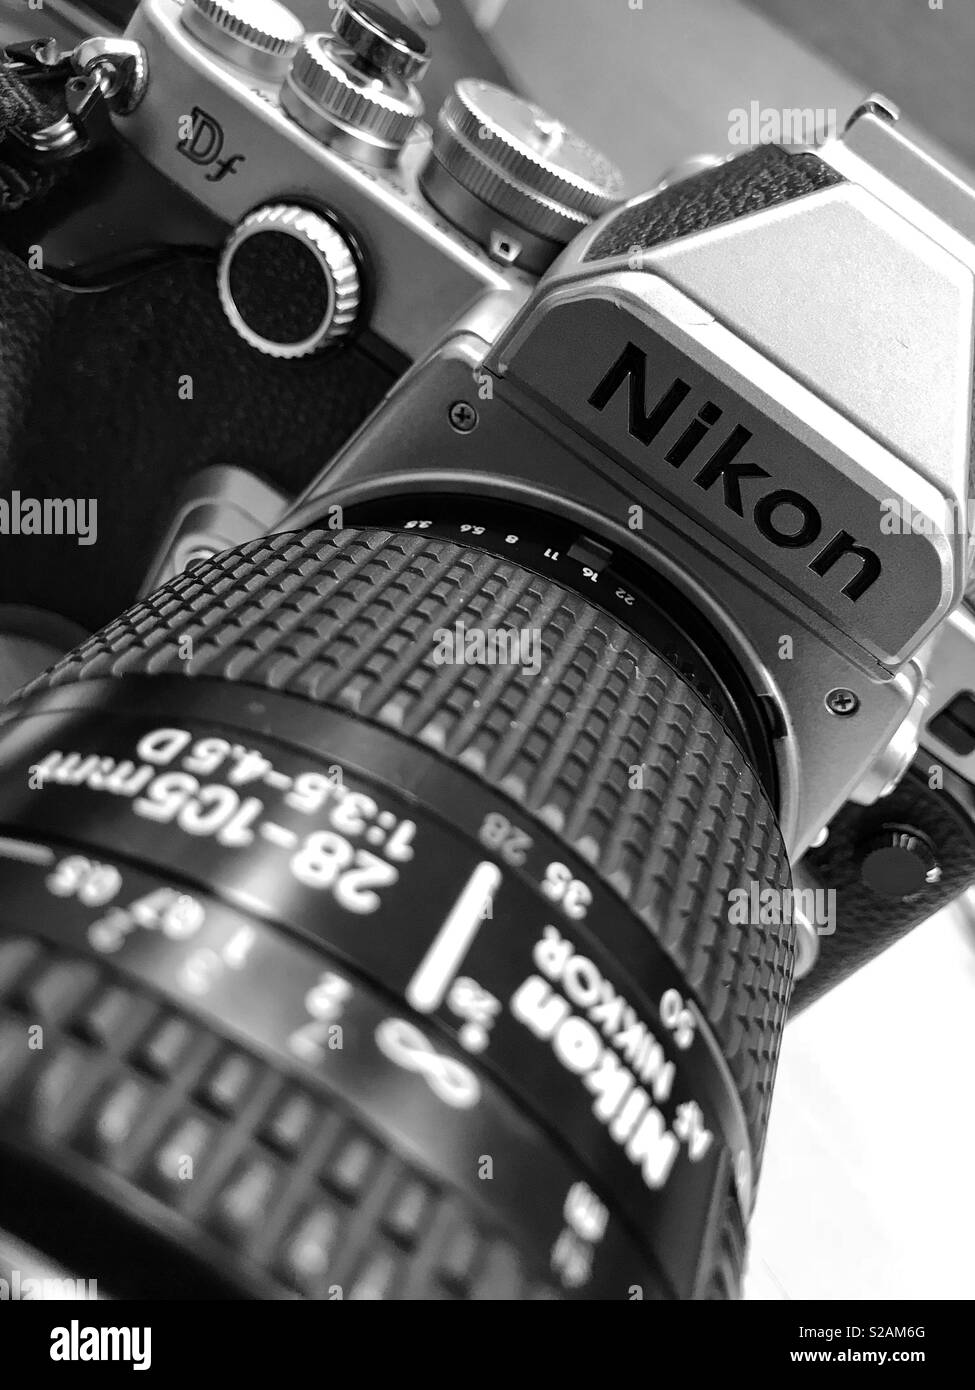 Nikon Camera Imágenes De Stock & Nikon Camera Fotos De Stock - Alamy